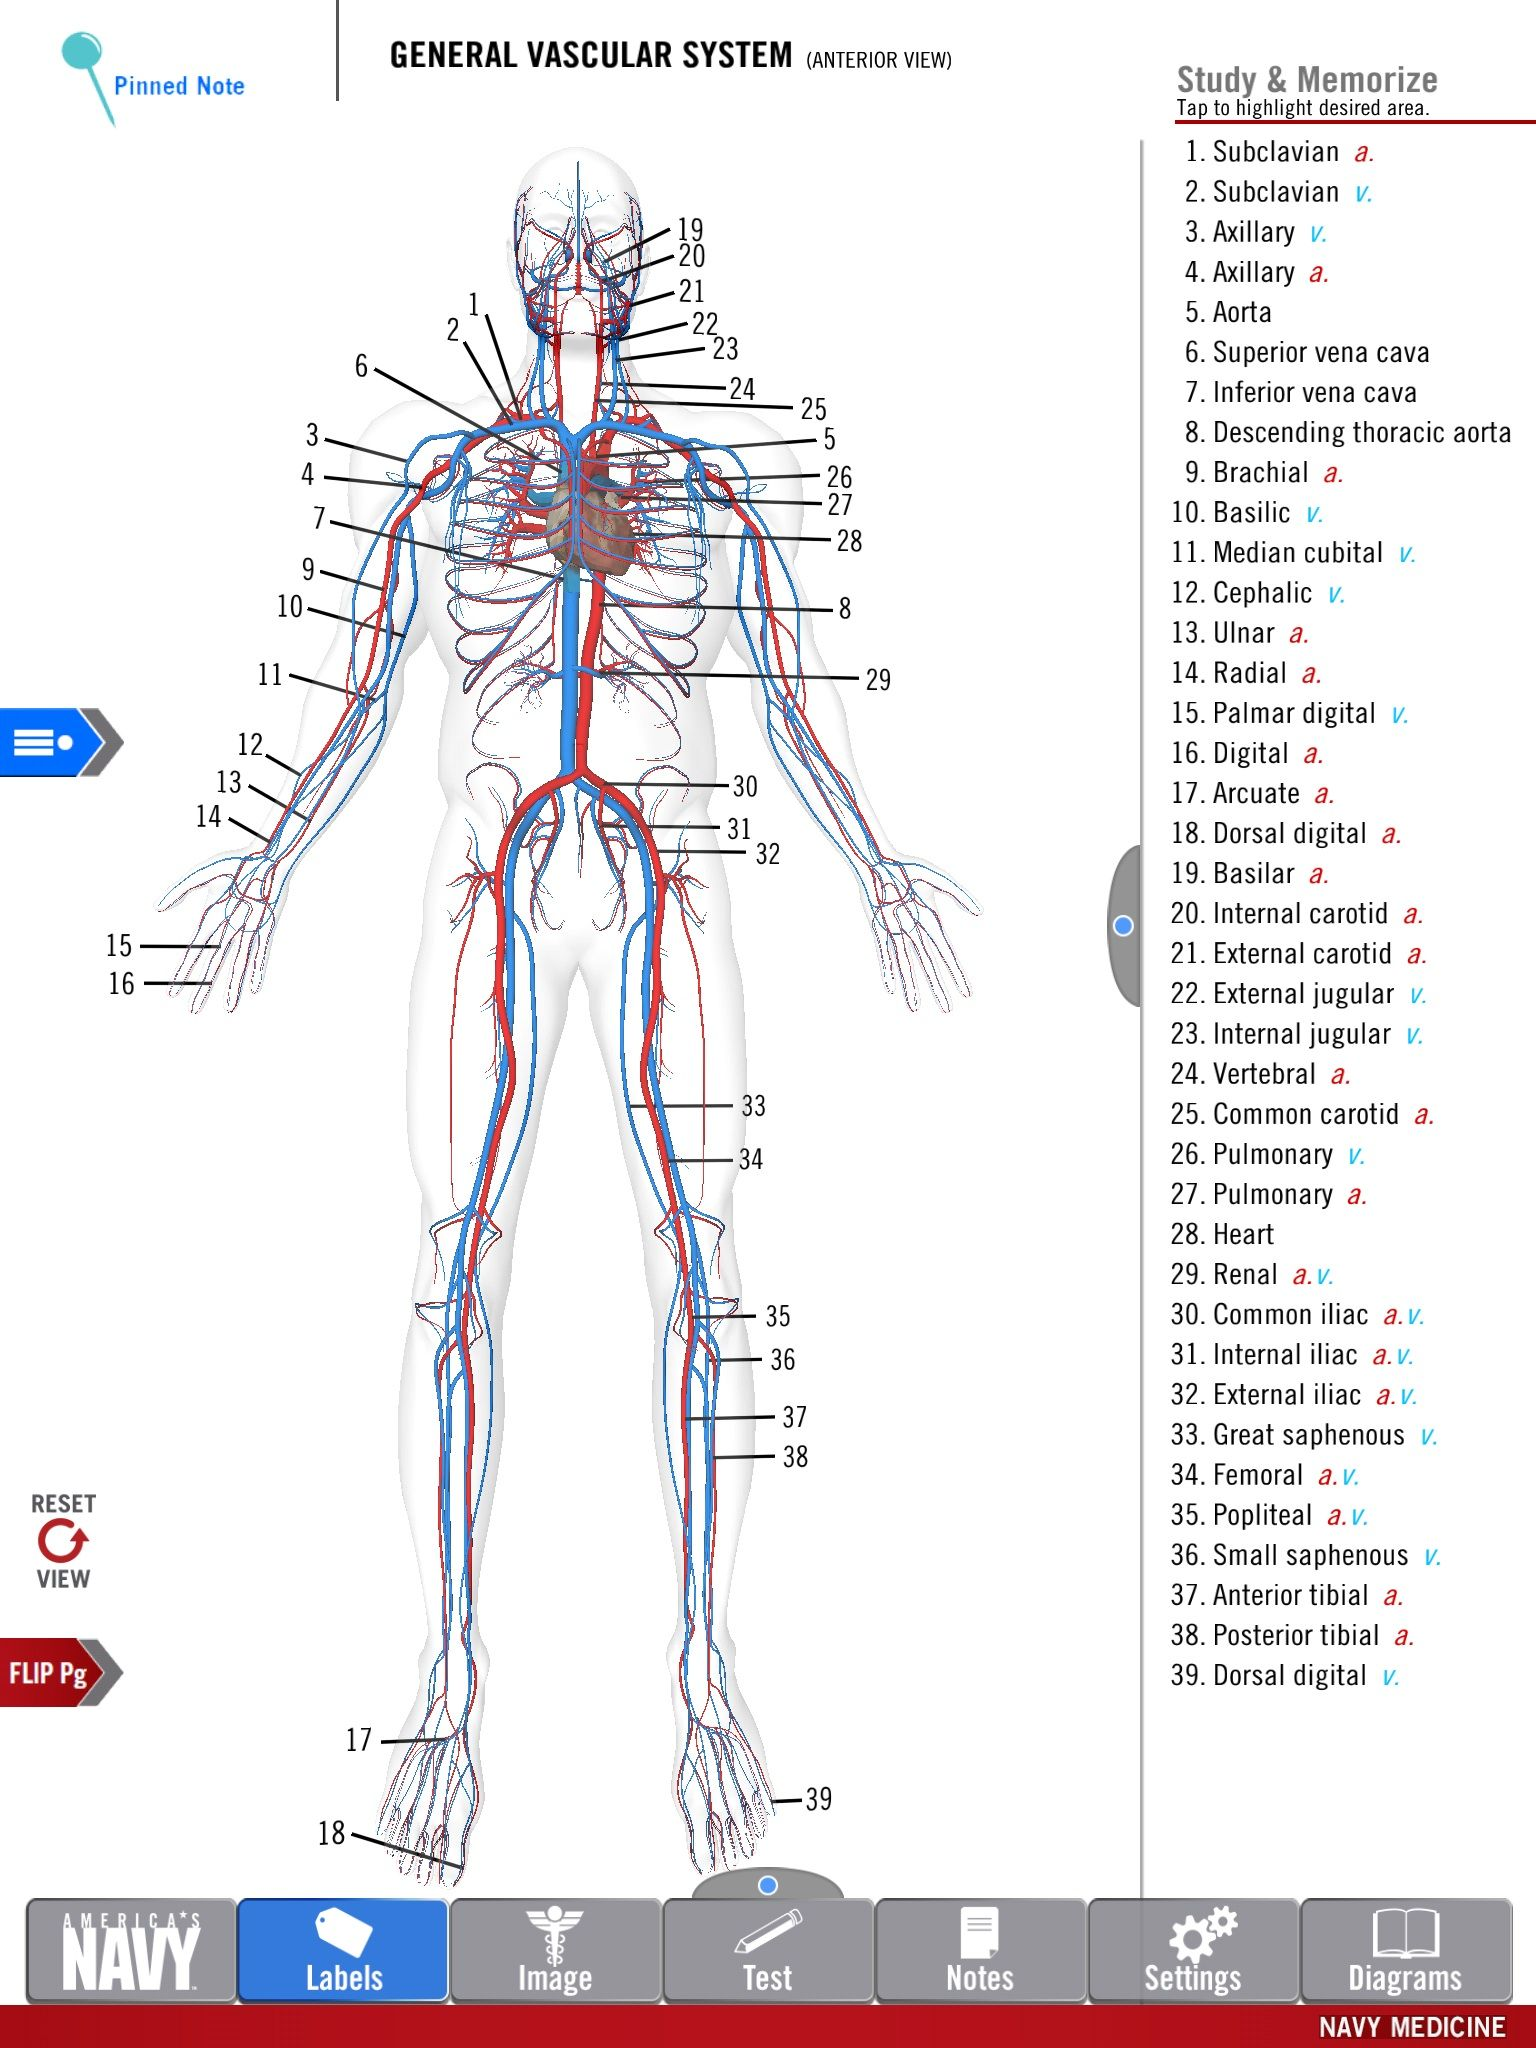 diagram of the general vascular system from the free anatomy study guide app by america s navy includes high res 3 d diagrams  [ 1536 x 2048 Pixel ]